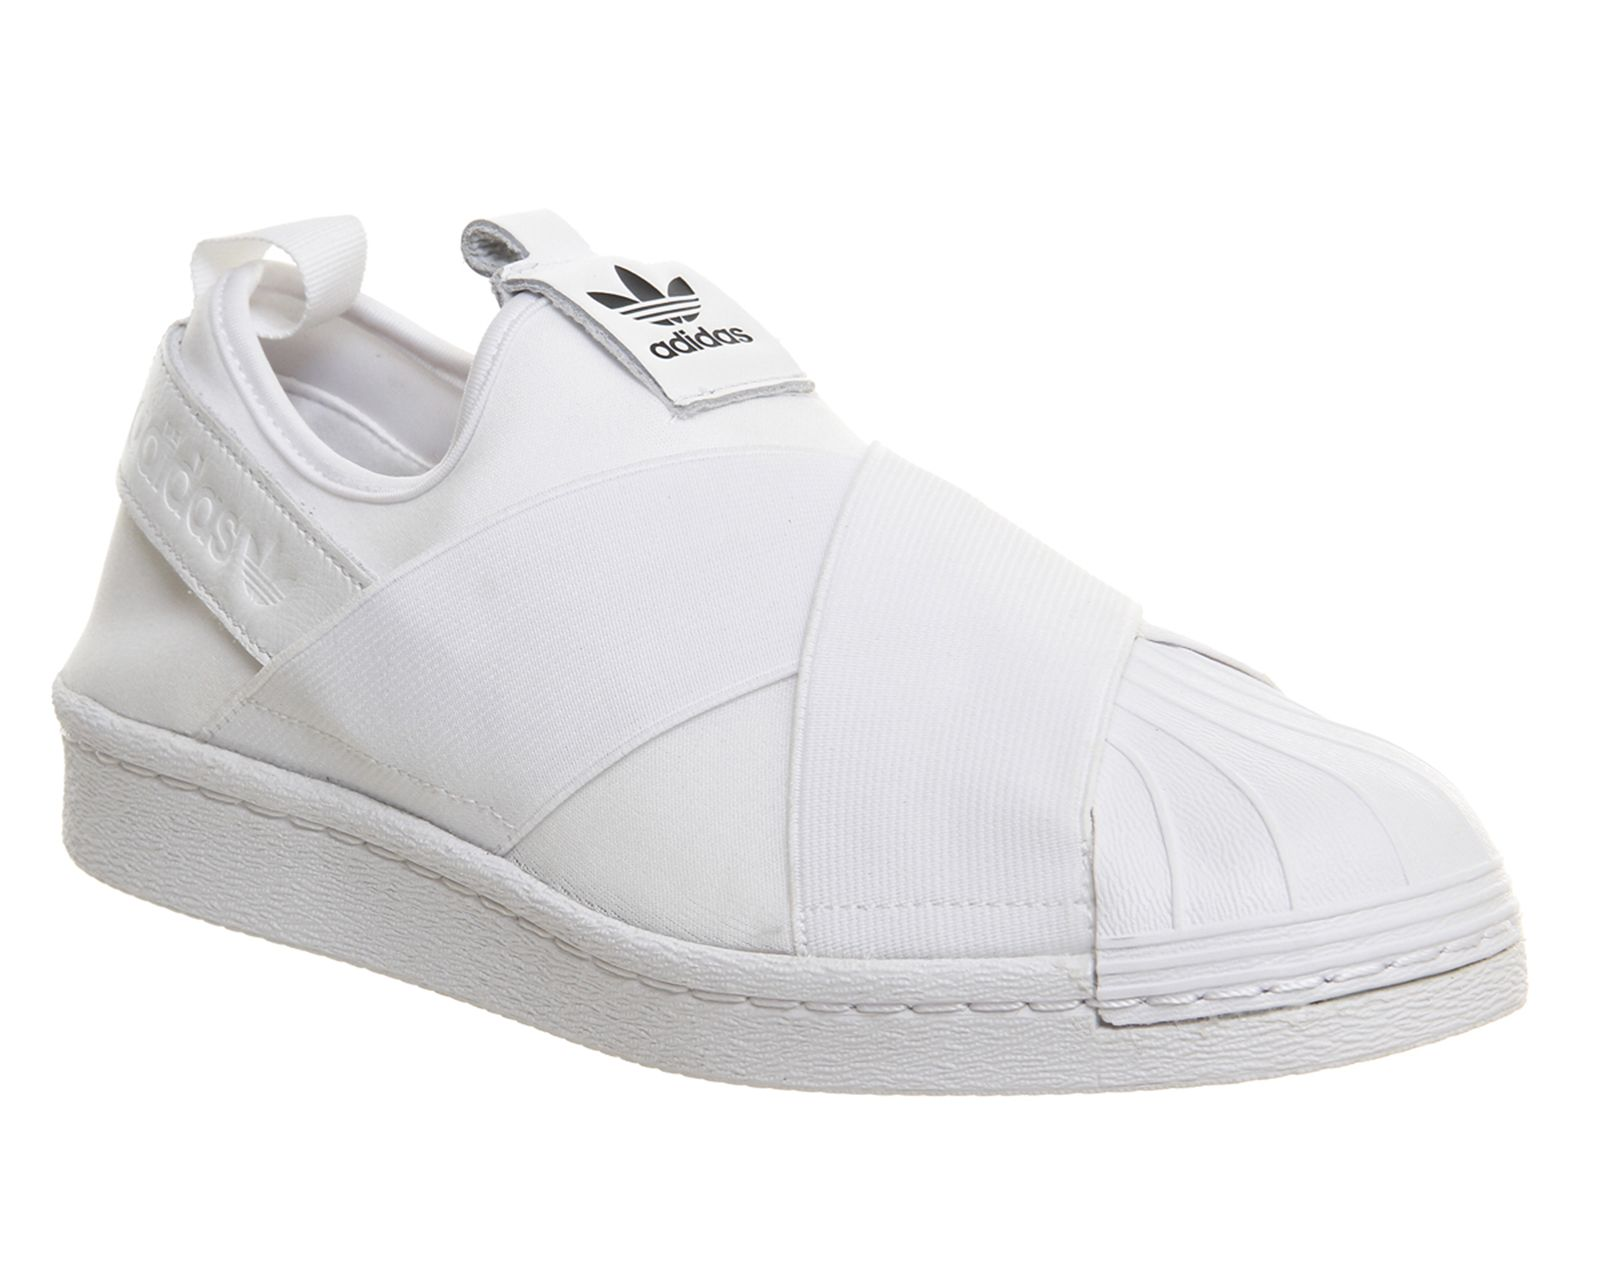 Buy White Mono Adidas Superstar Slip On from OFFICE.co.uk.